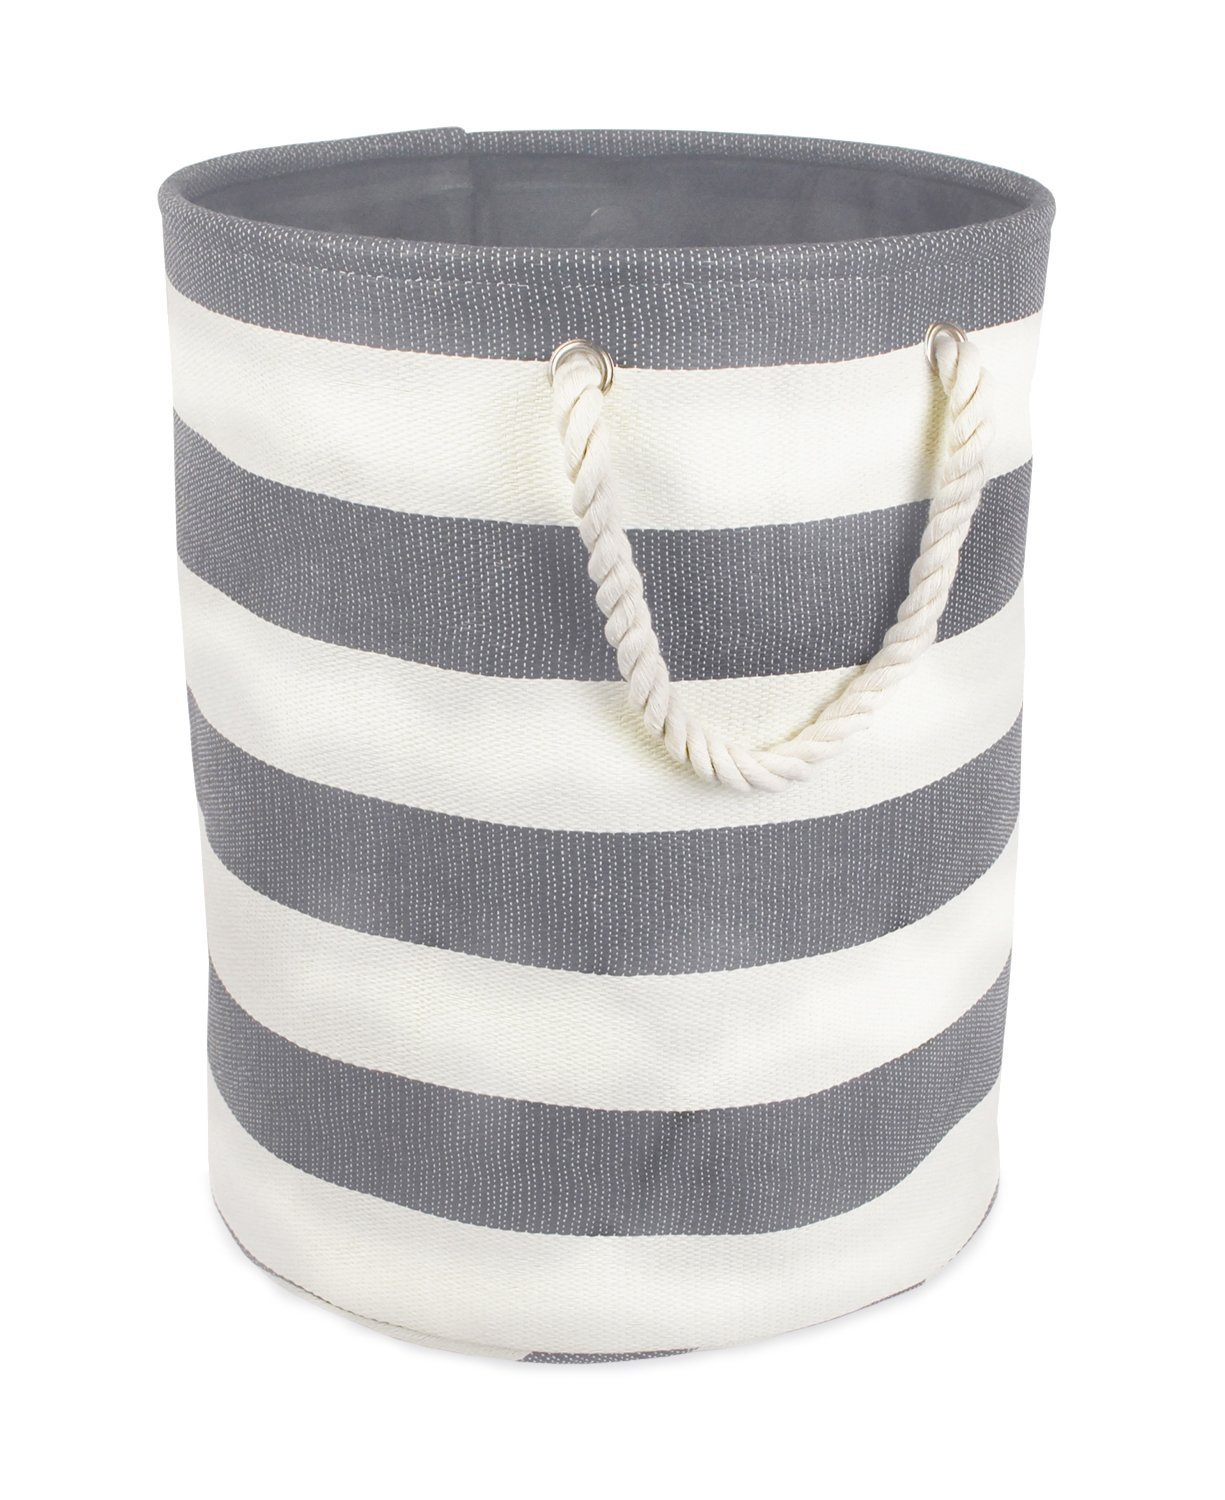 DII Woven Paper Basket or Bin, Collapsible & Convenient Home Organization Solution for Bedroom, Bathroom, Dorm or Laundry (Small Round - 14x12'') - Gray Rugby Rugby Stripe